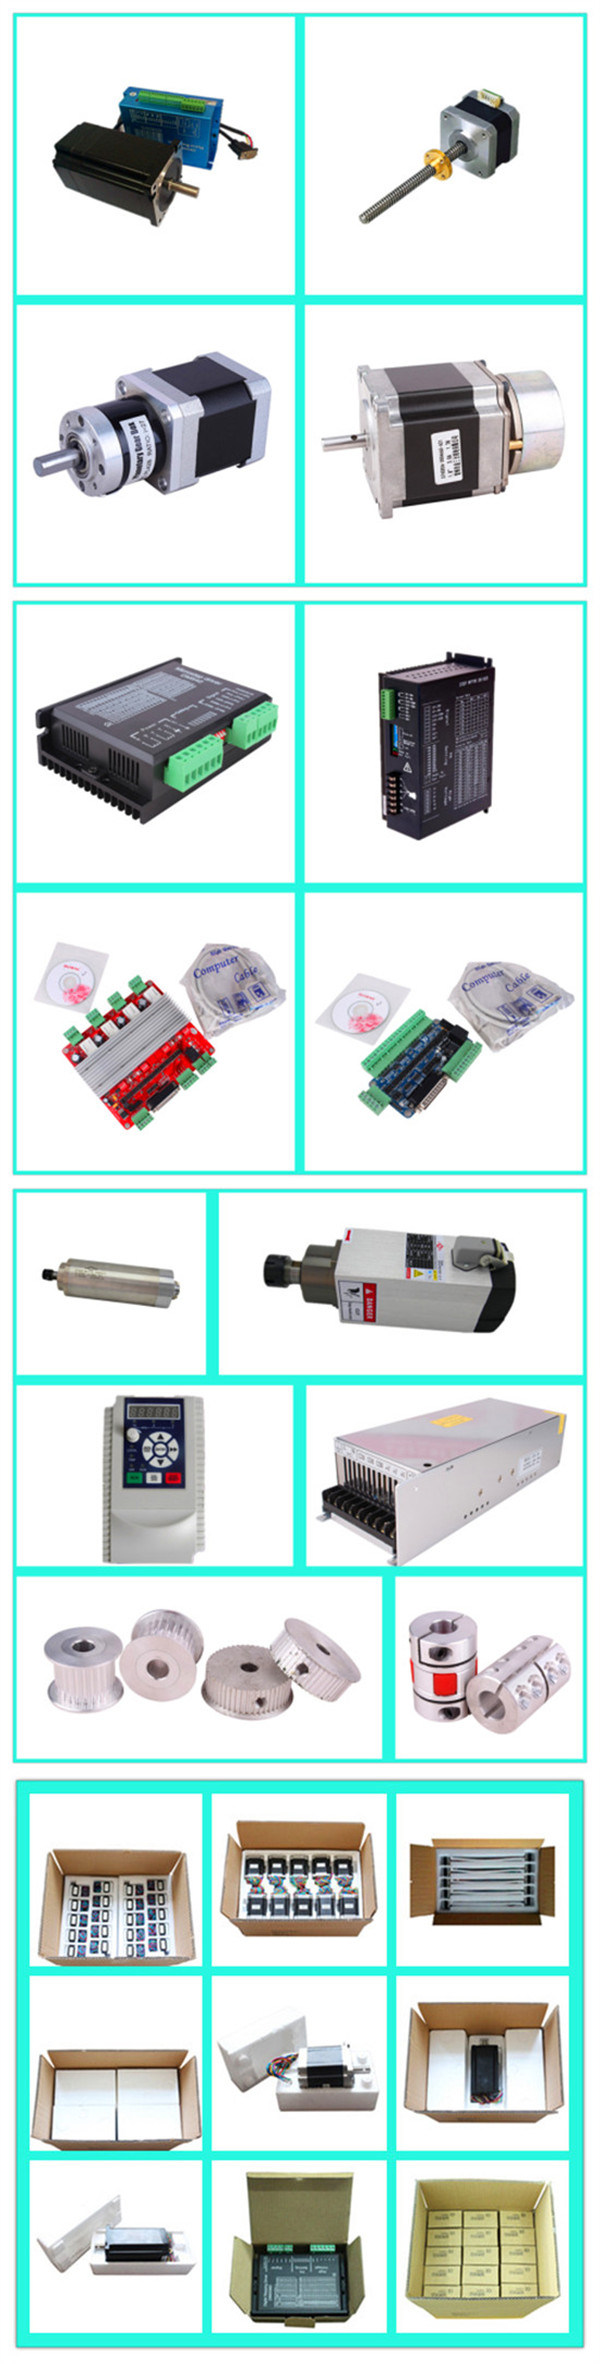 Nema 17 Stepper Step Motor Bipolar 4 Wires China Wiring Diagram For All The Motors And Closed Loop Drivers We Also Have Accessories Such As Power Supplys Spindles Inverters Breakout Board